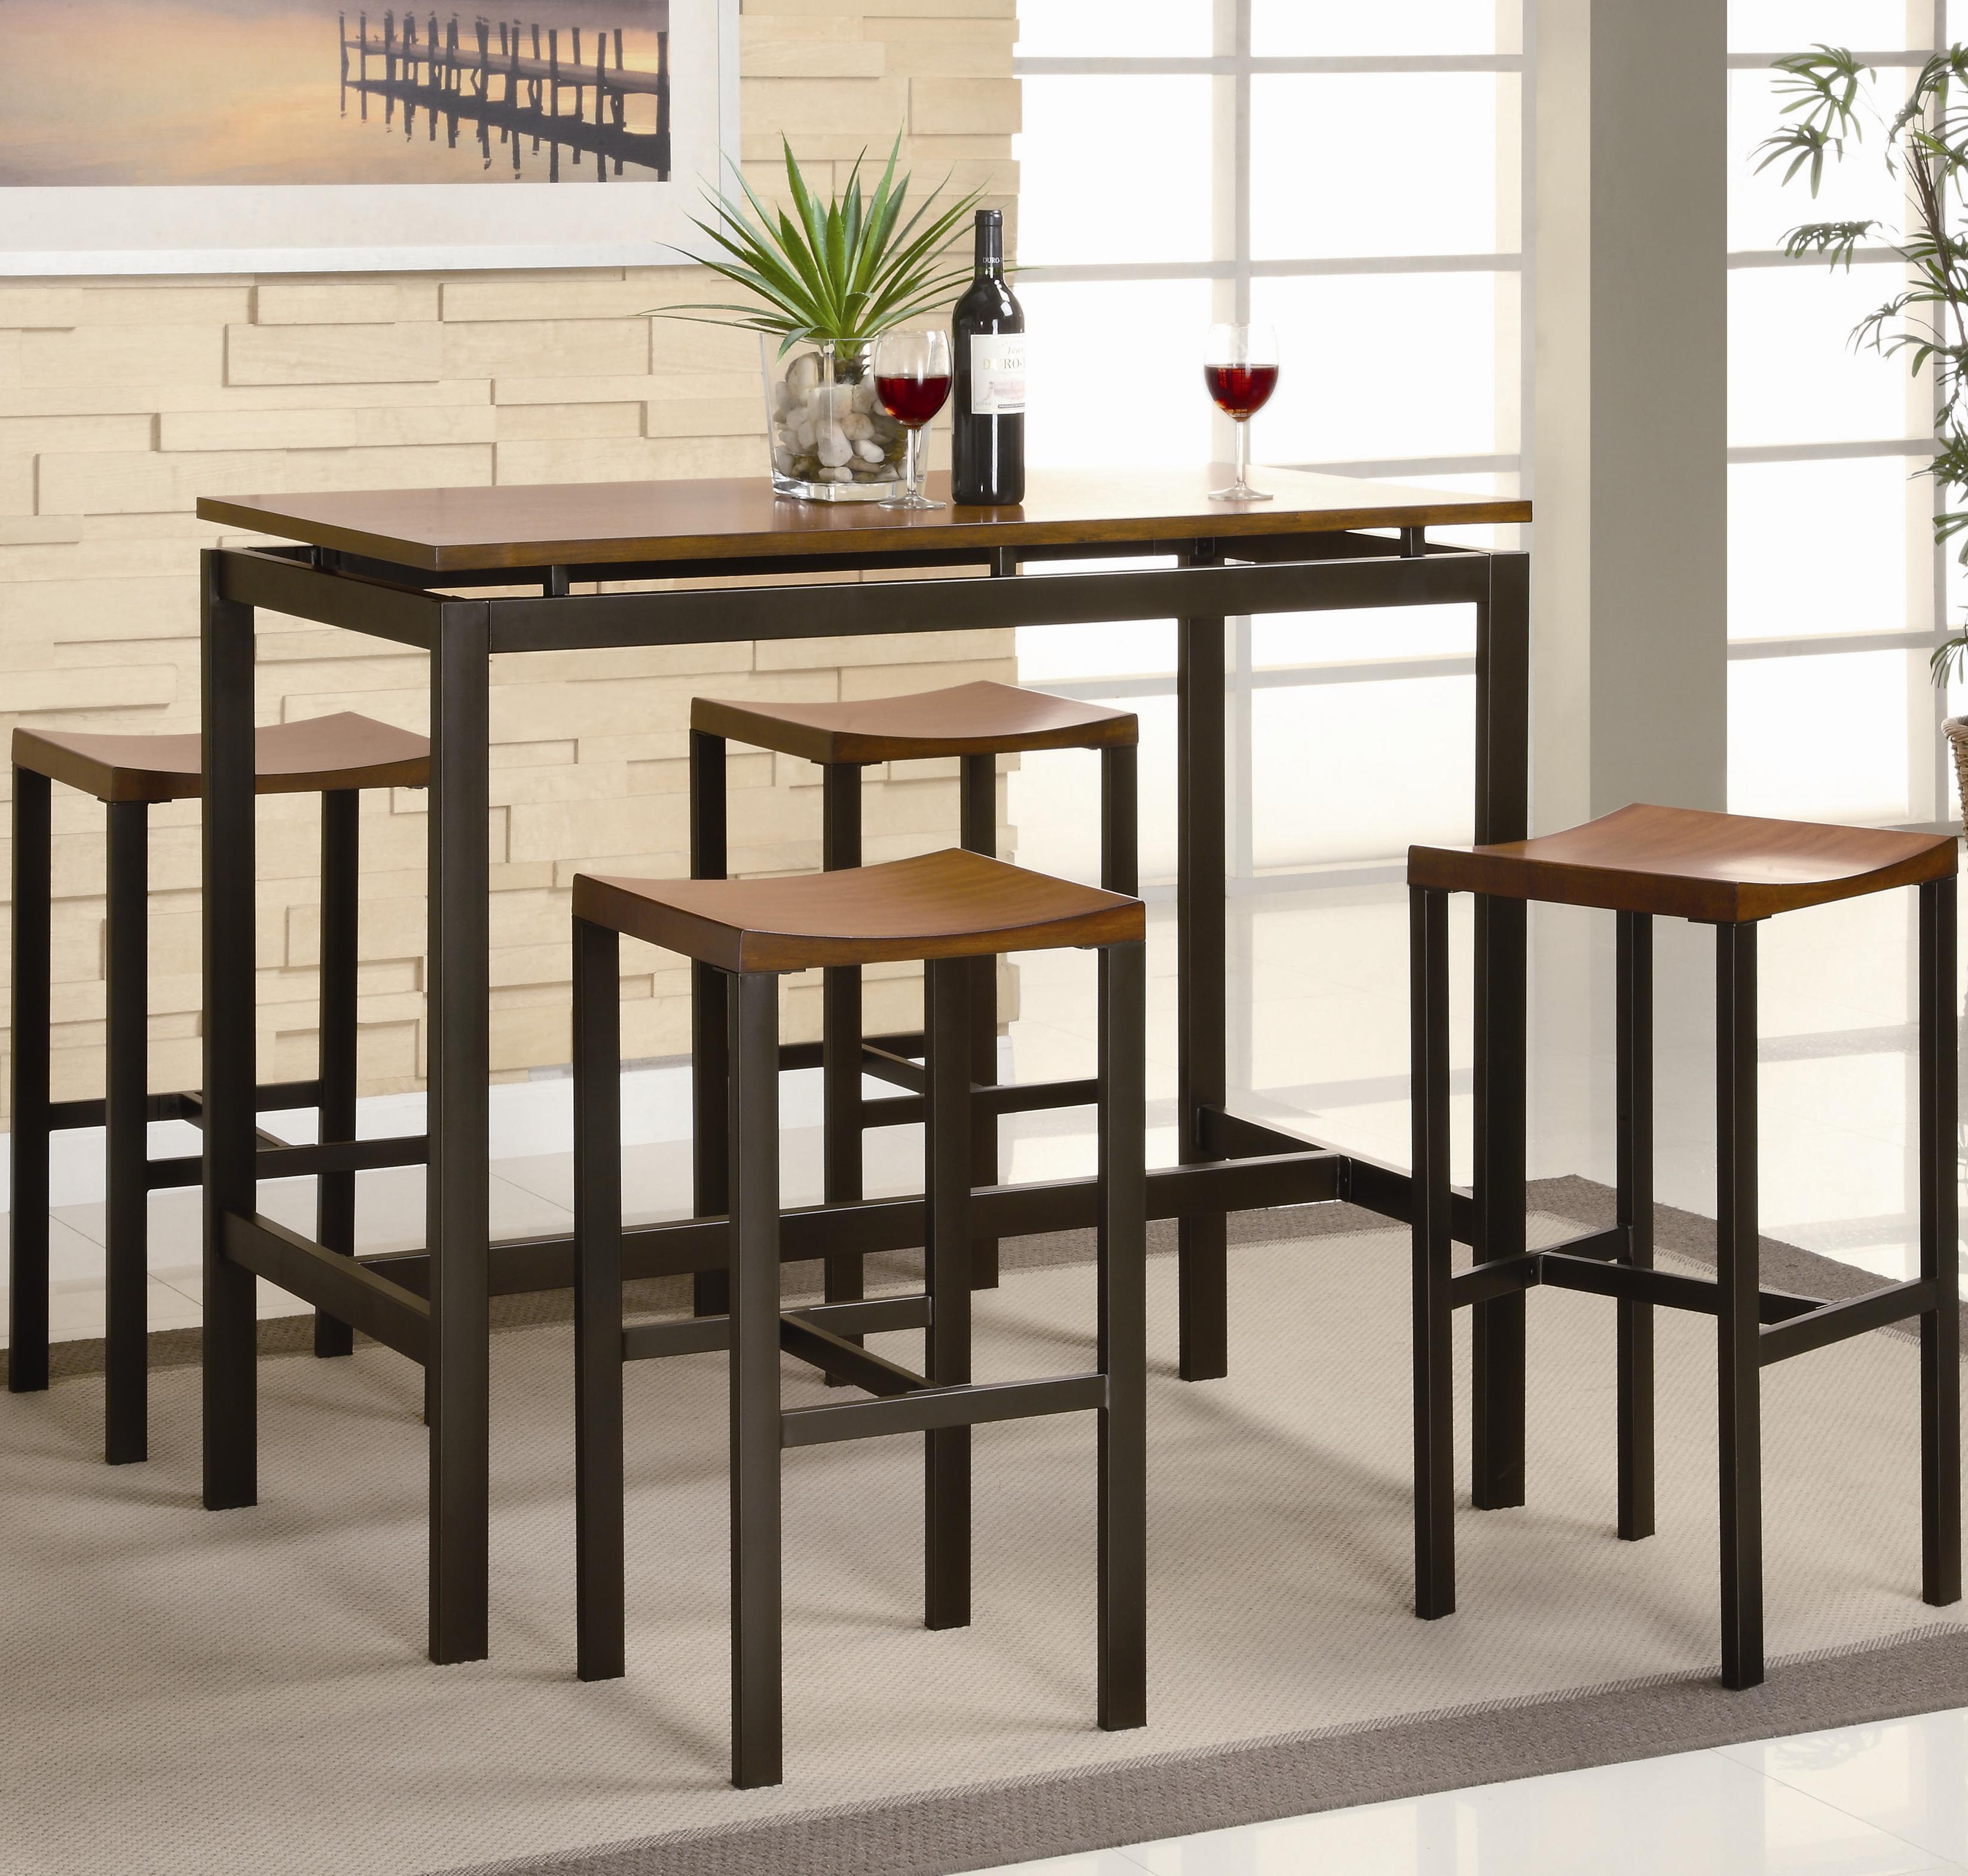 Coaster Atlus 5 Piece Counter Height Dining Set   Item Number: 150097